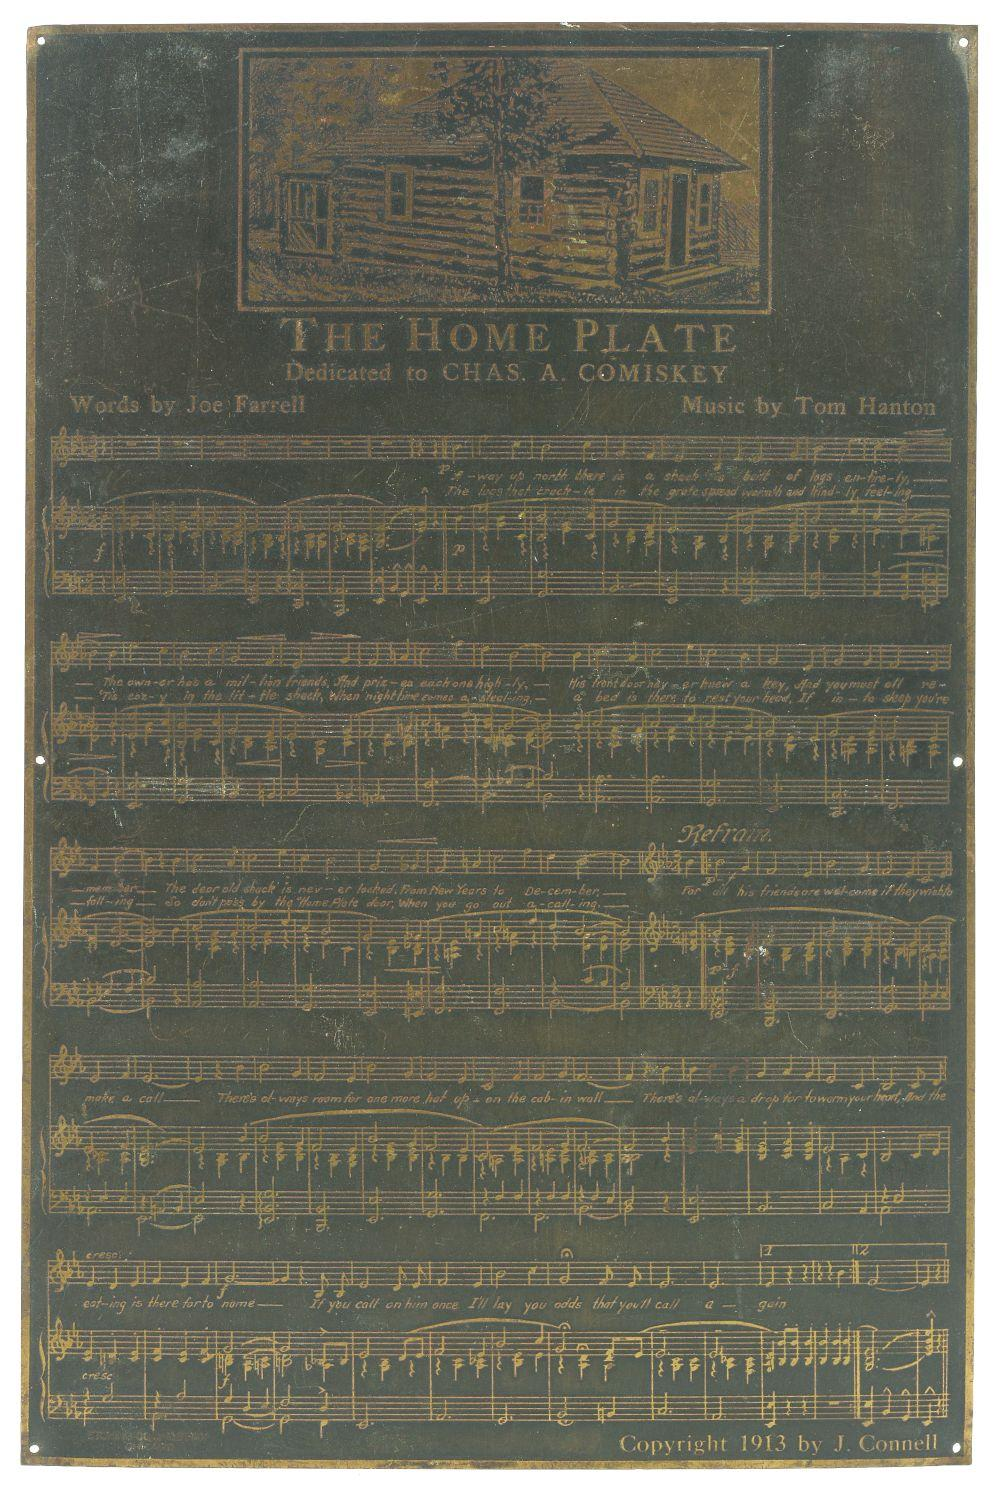 Very Unusual & Unique Charles Comiskey Dedicated Home Plate Metal Sheet Music Piece.